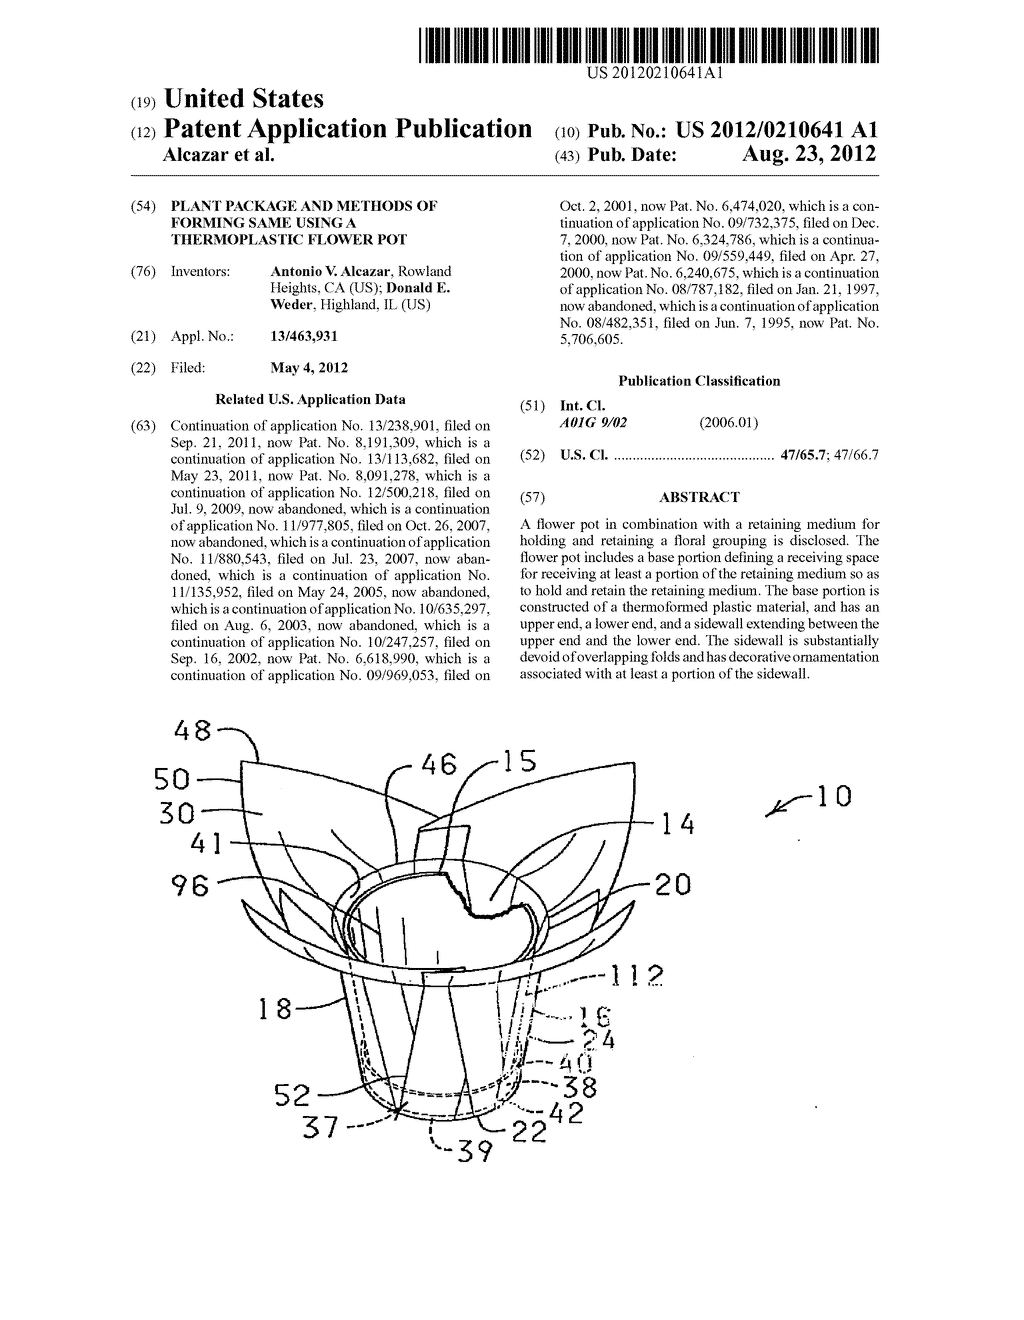 PLANT PACKAGE AND METHODS OF FORMING SAME USING A THERMOPLASTIC FLOWER POT - diagram, schematic, and image 01